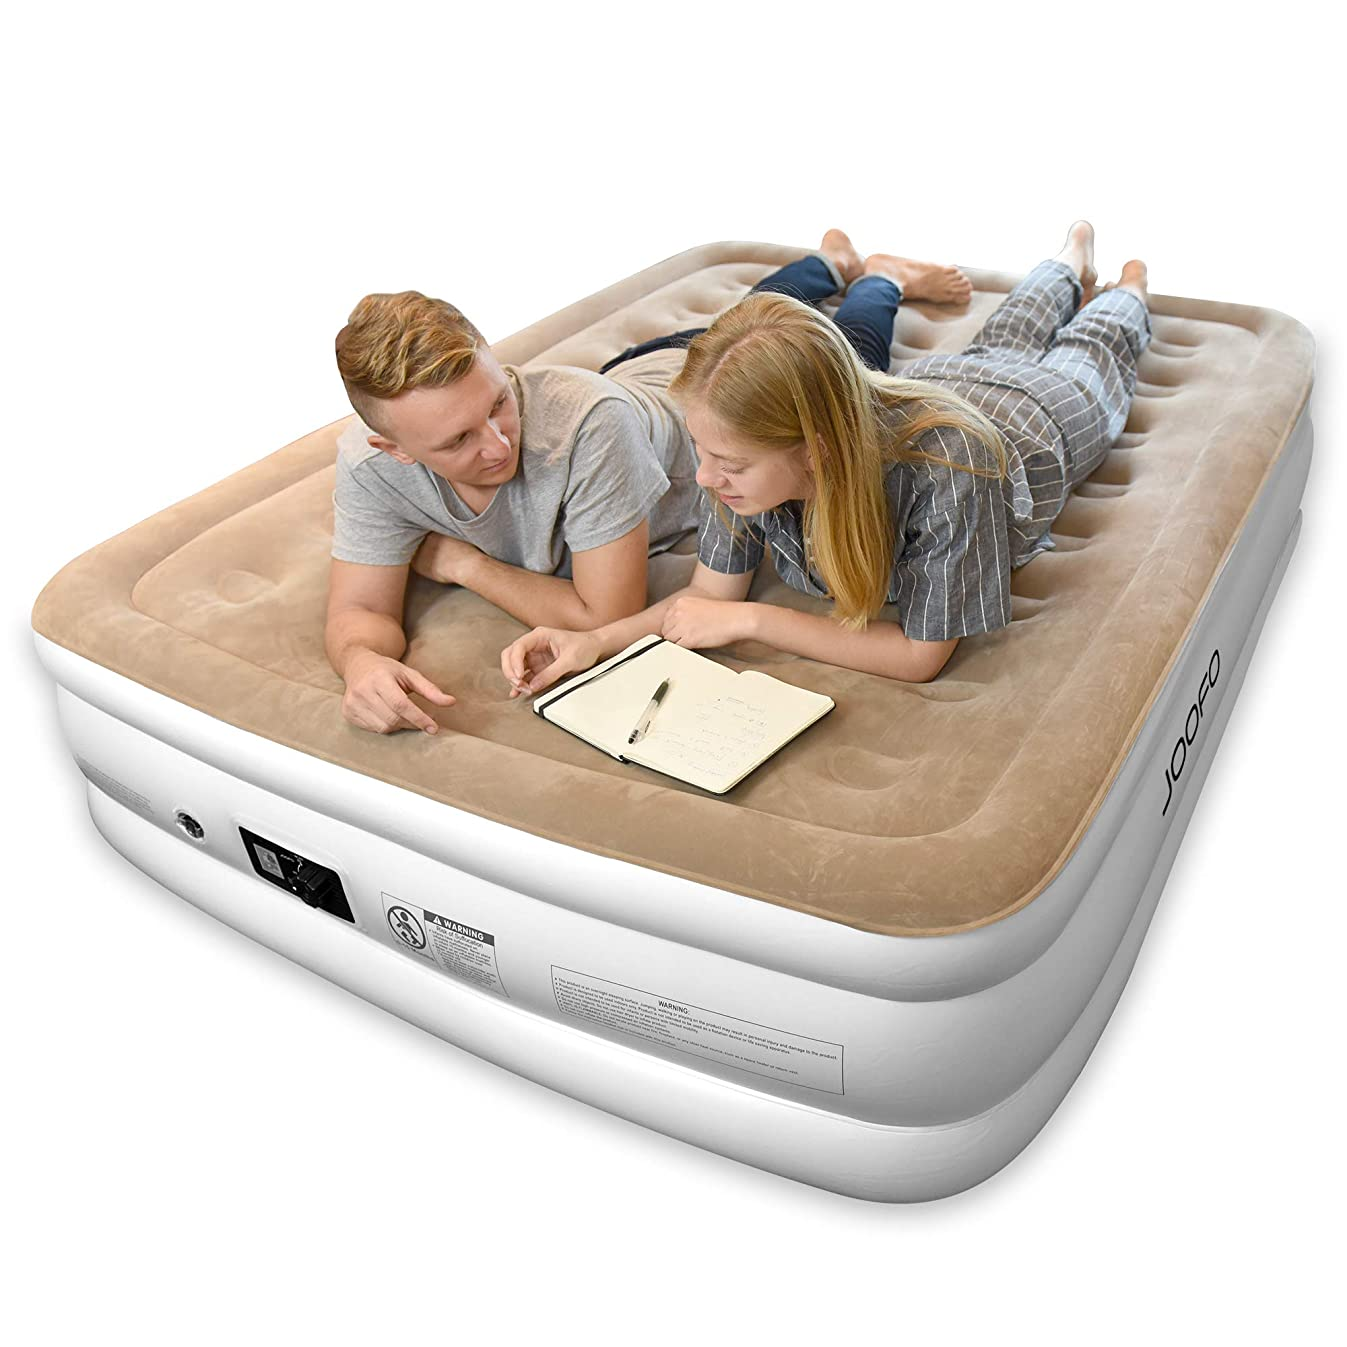 Joofo Air Mattress Queen,Breathability and Comfort Double HIGH Raised Inflatable Airbed with Upgraded Built-in Pump for Guests,Kids,Camping& 3-Year Guarantee Bed Height 18